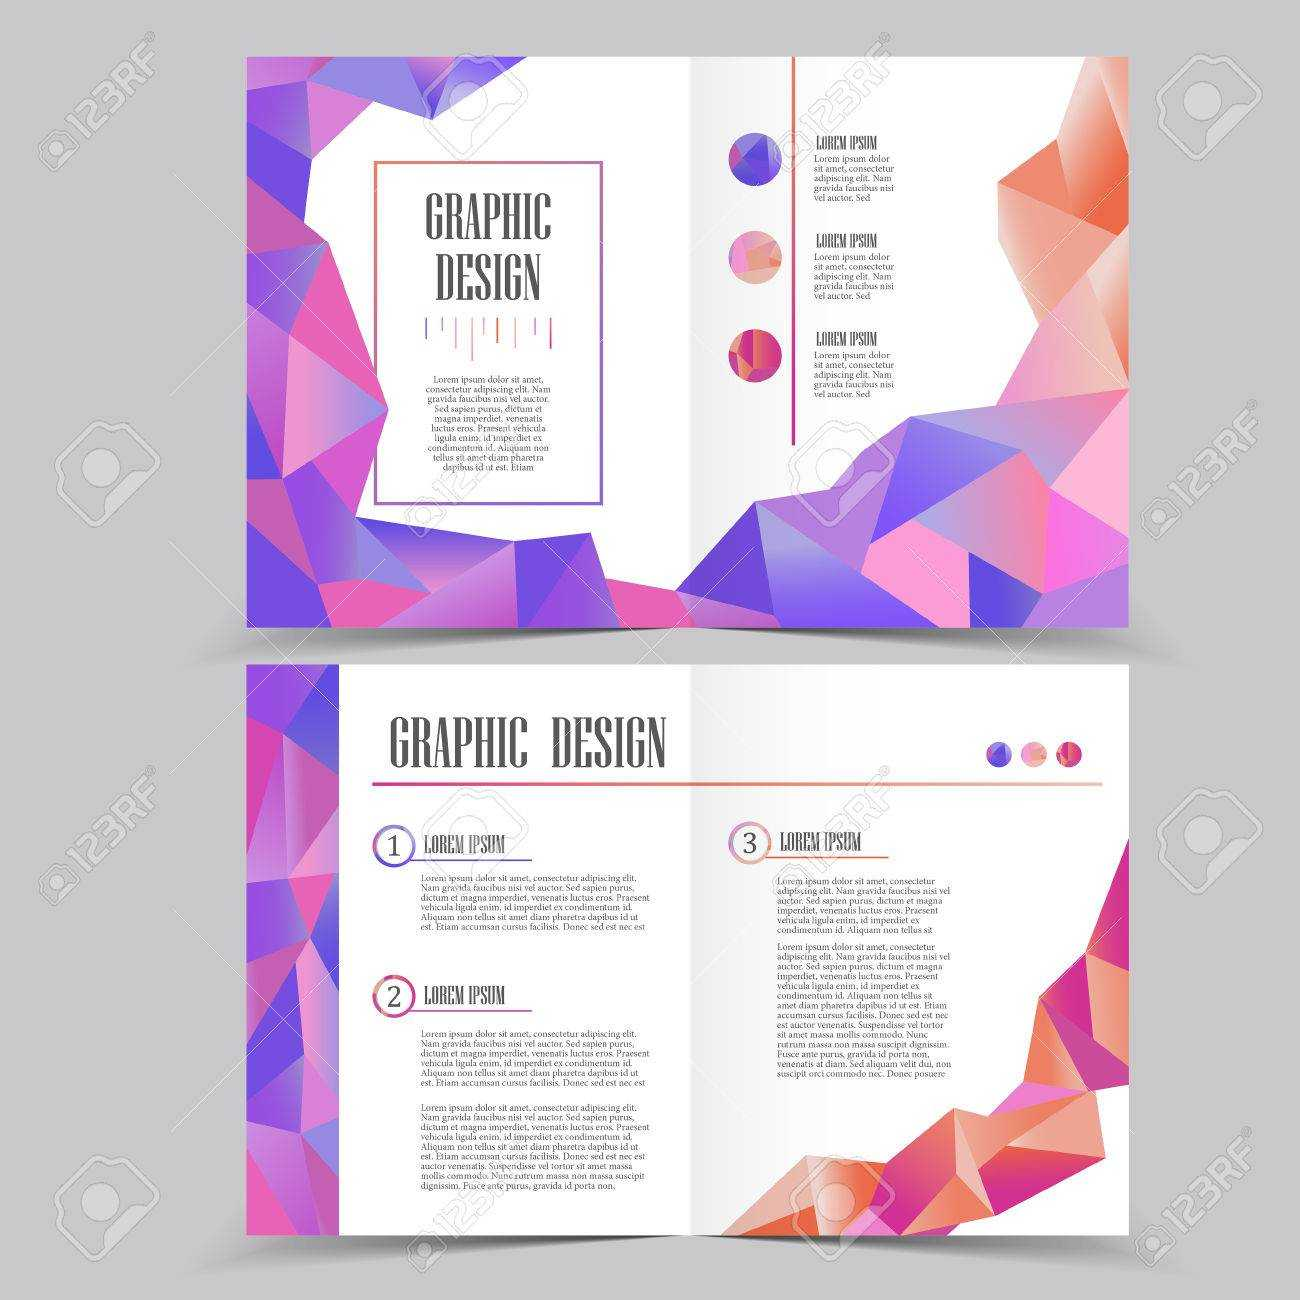 Beautiful Half-Fold Brochure Template Design With Crystal Elements for Half Page Brochure Template